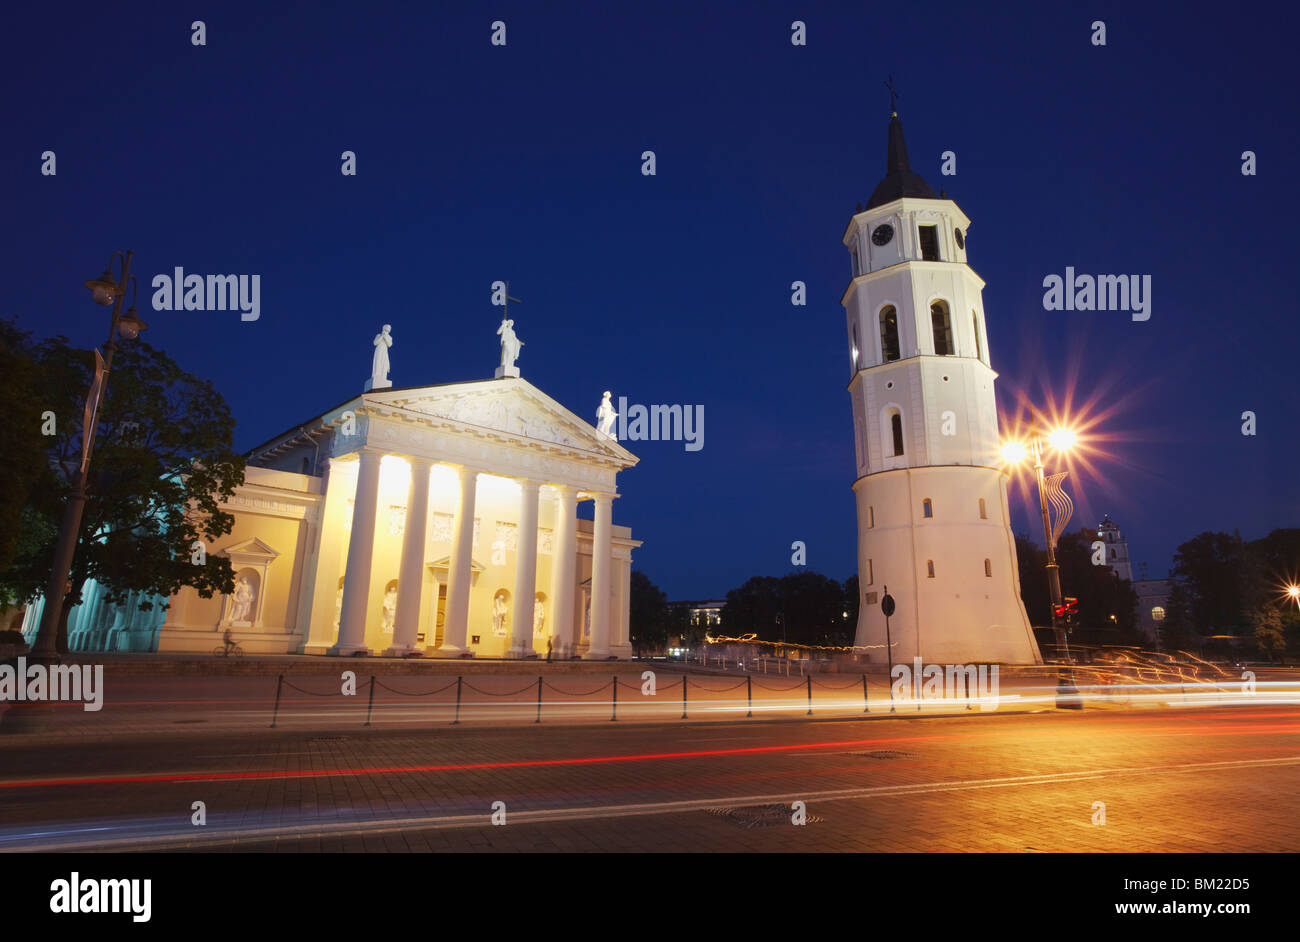 Vilnius Cathedral and Bell Tower at dusk, Vilnius, Lithuania, Baltic States, Europe - Stock Image